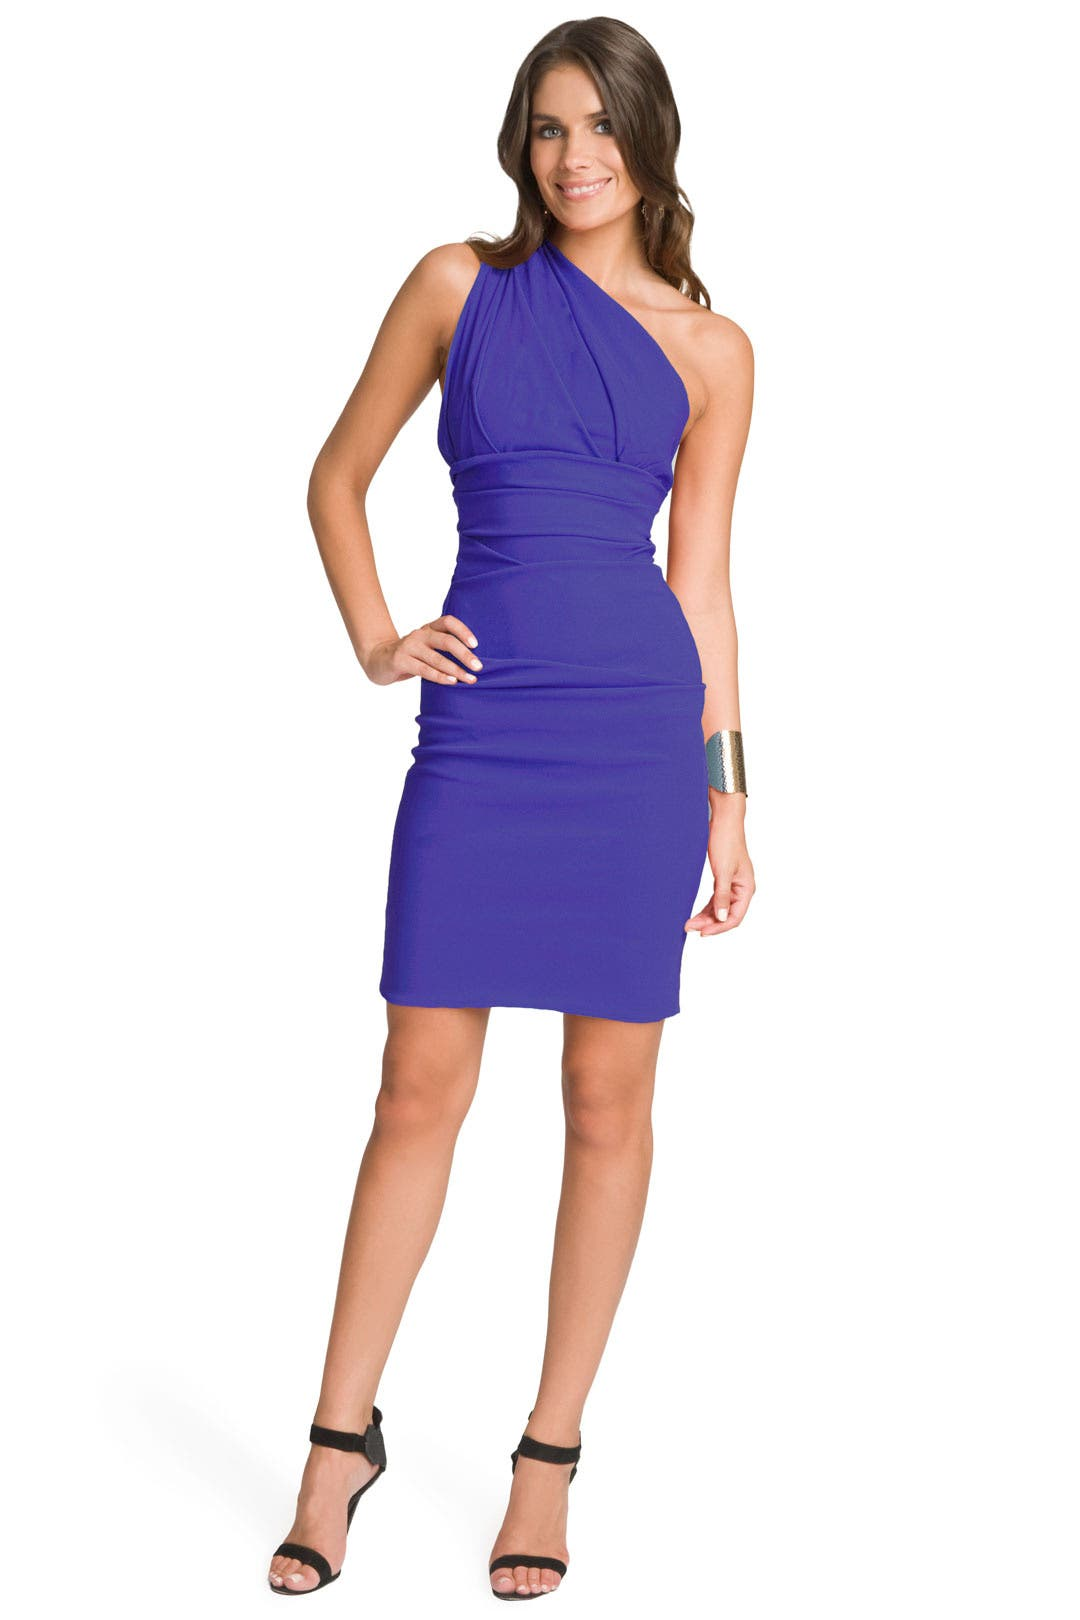 Blue Violet Cocktail Dress by Preen